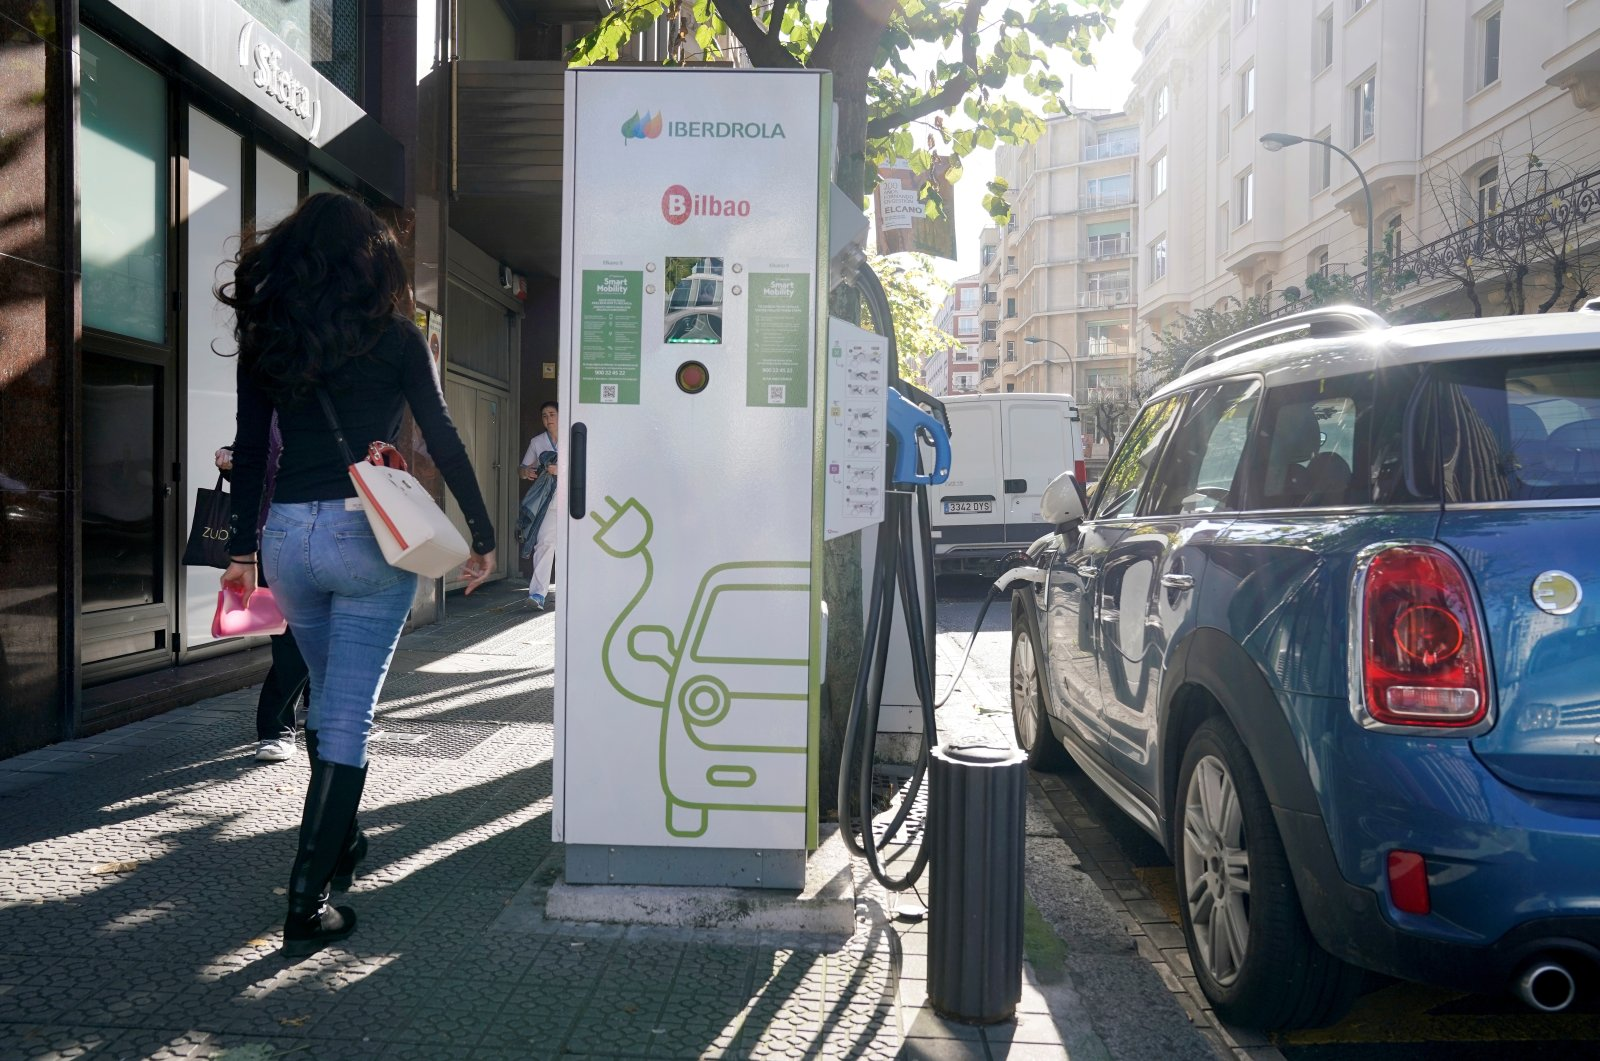 An electric car is charged from an Iberdrola electric car charging station in central Bilbao, Spain, Nov. 15, 2018. (Reuters Photo)